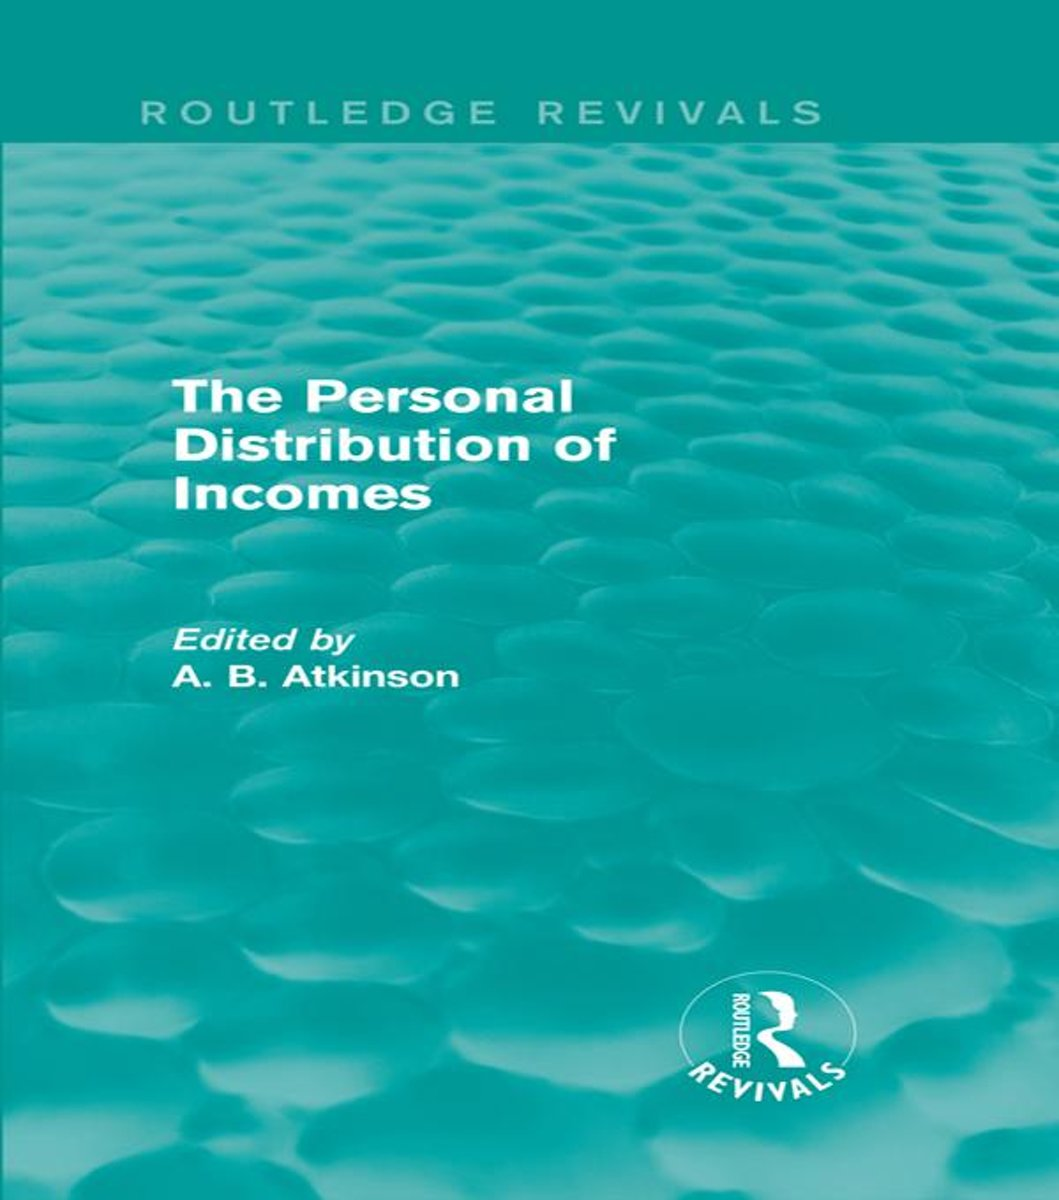 The Personal Distribution of Incomes (Routledge Revivals)